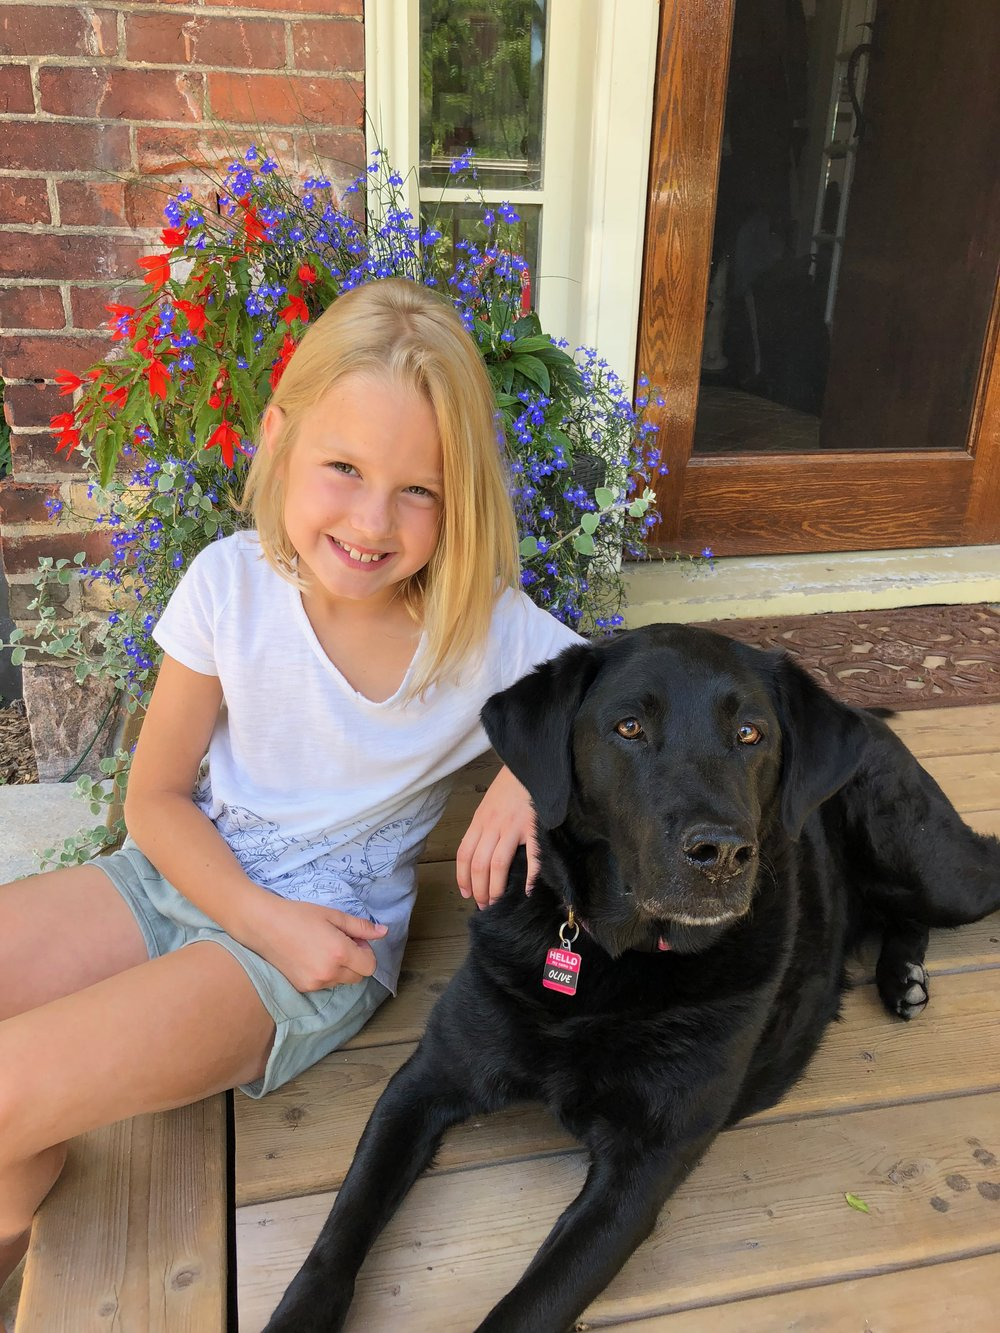 Tilly (pictured with her dog, Olive) is making a great impact on raising awareness about living with Type 1 diabetes